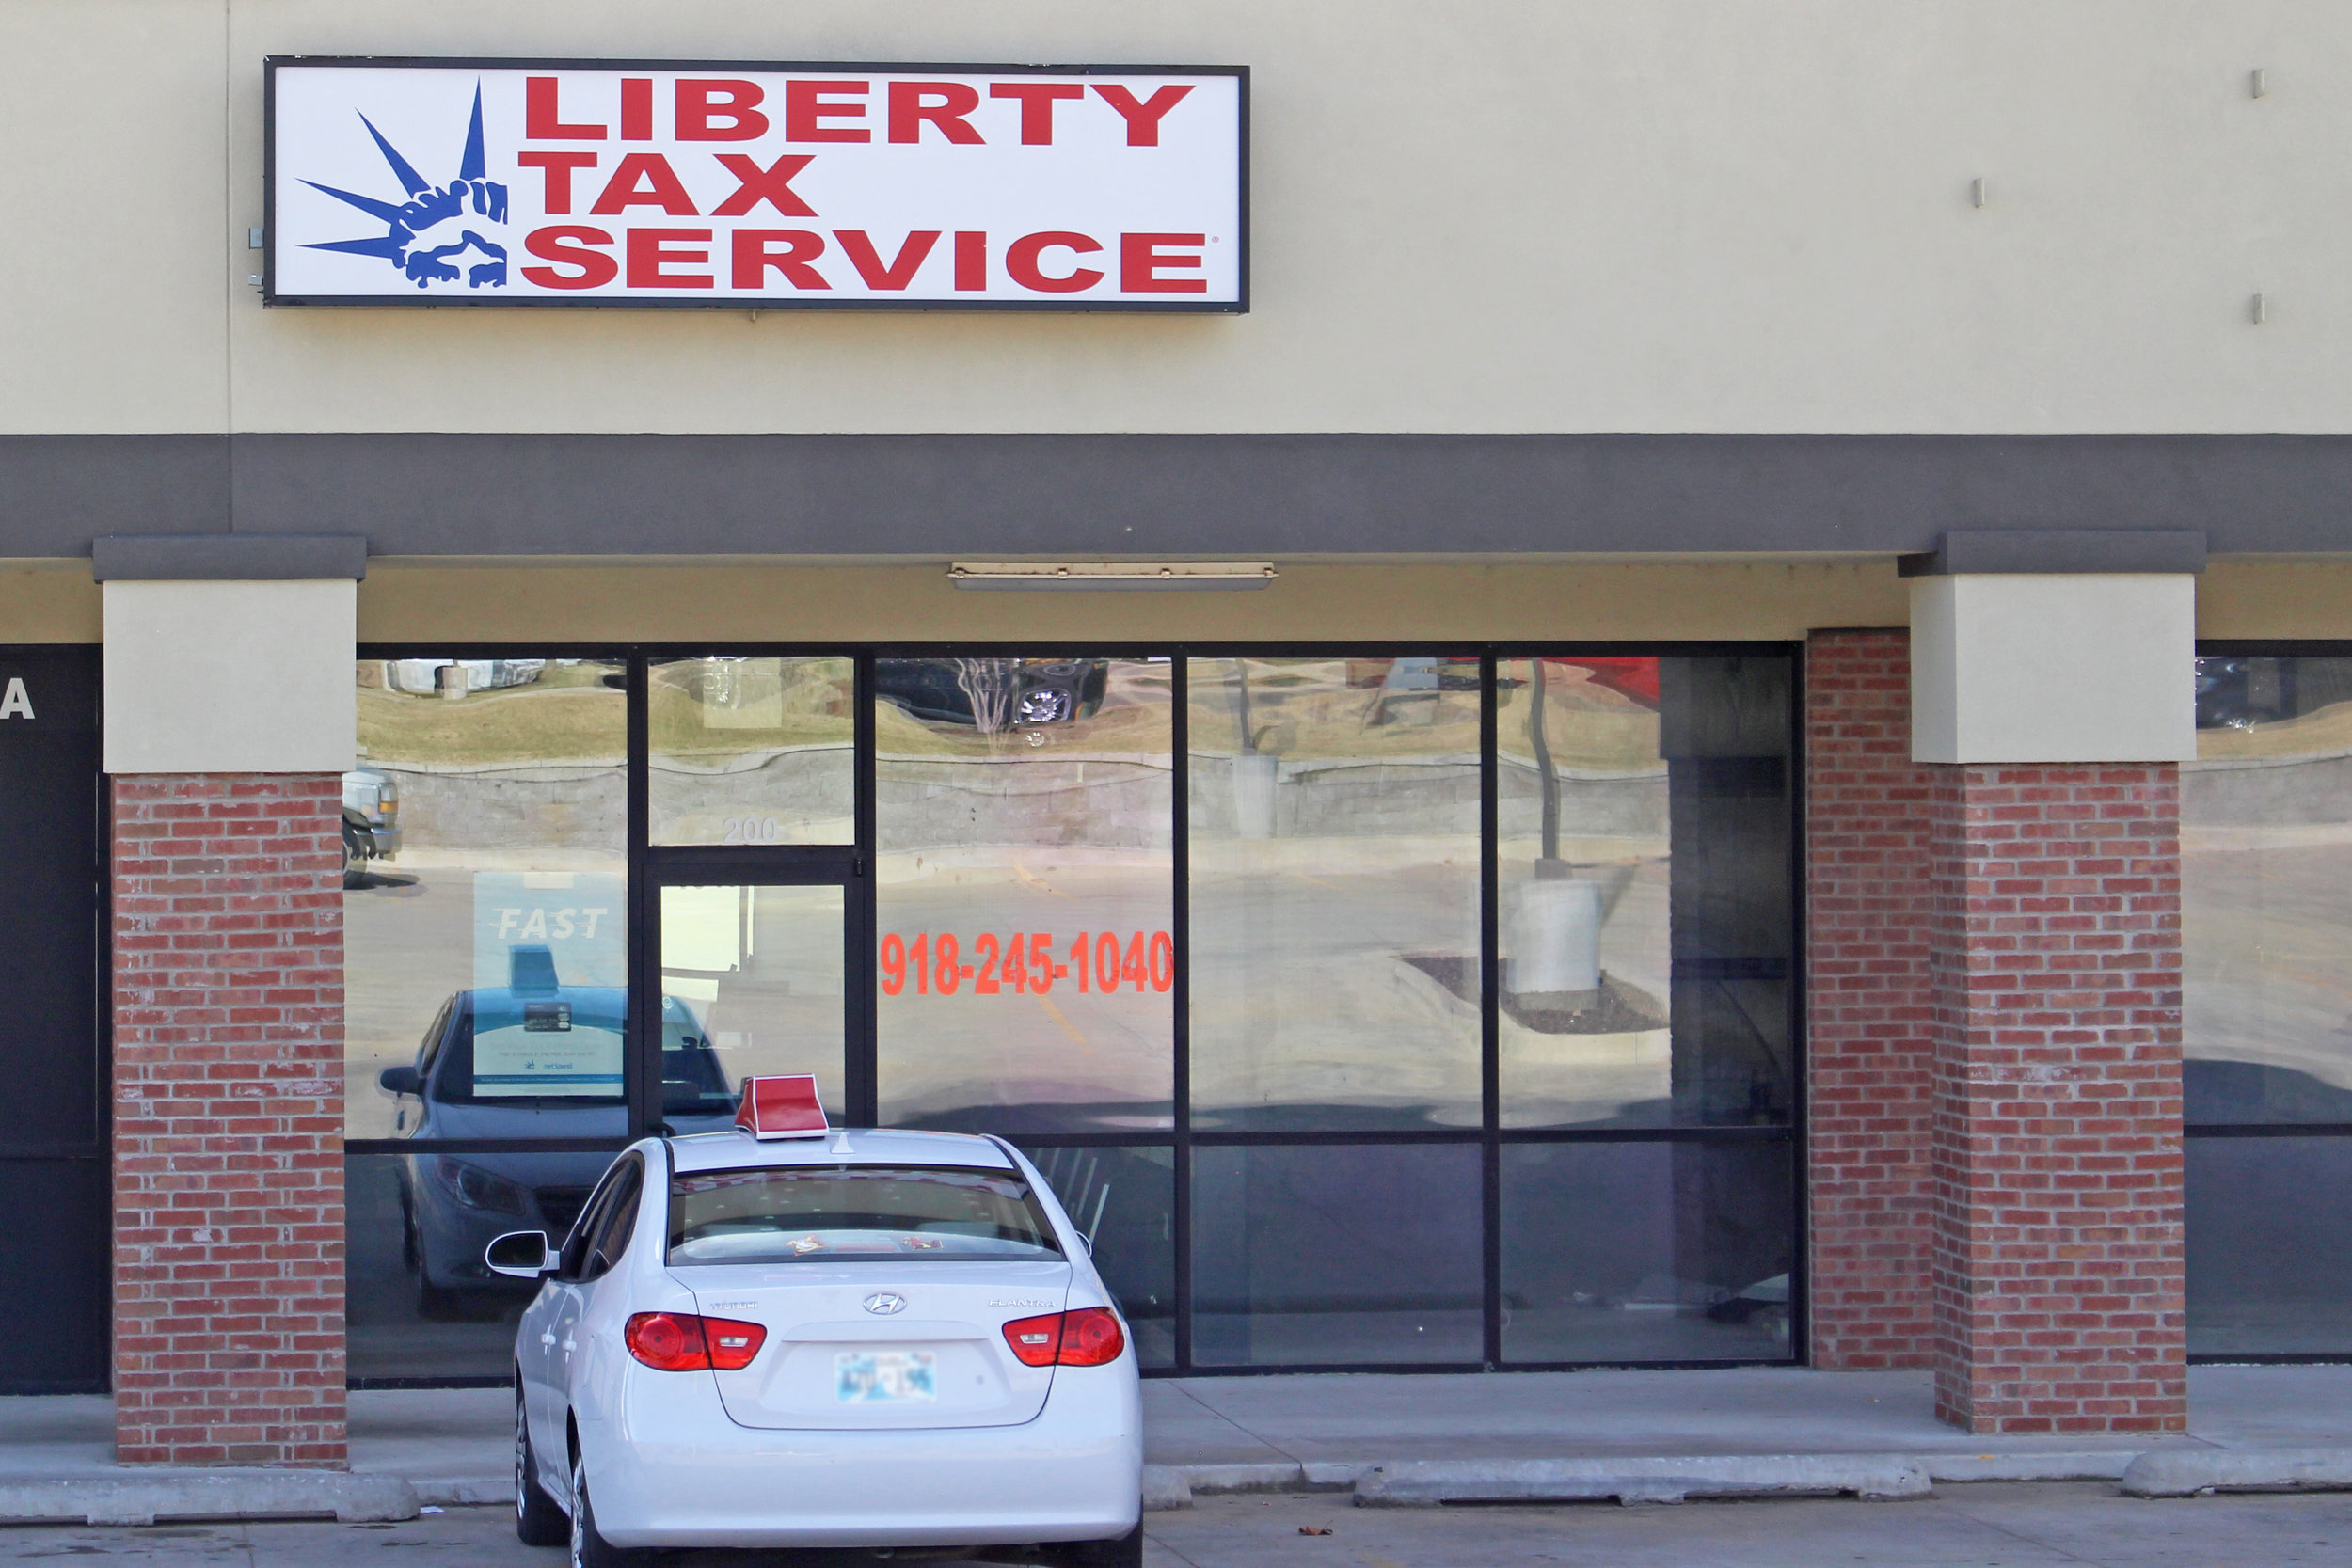 liberty tax service 302 west 2nd street, suite 200